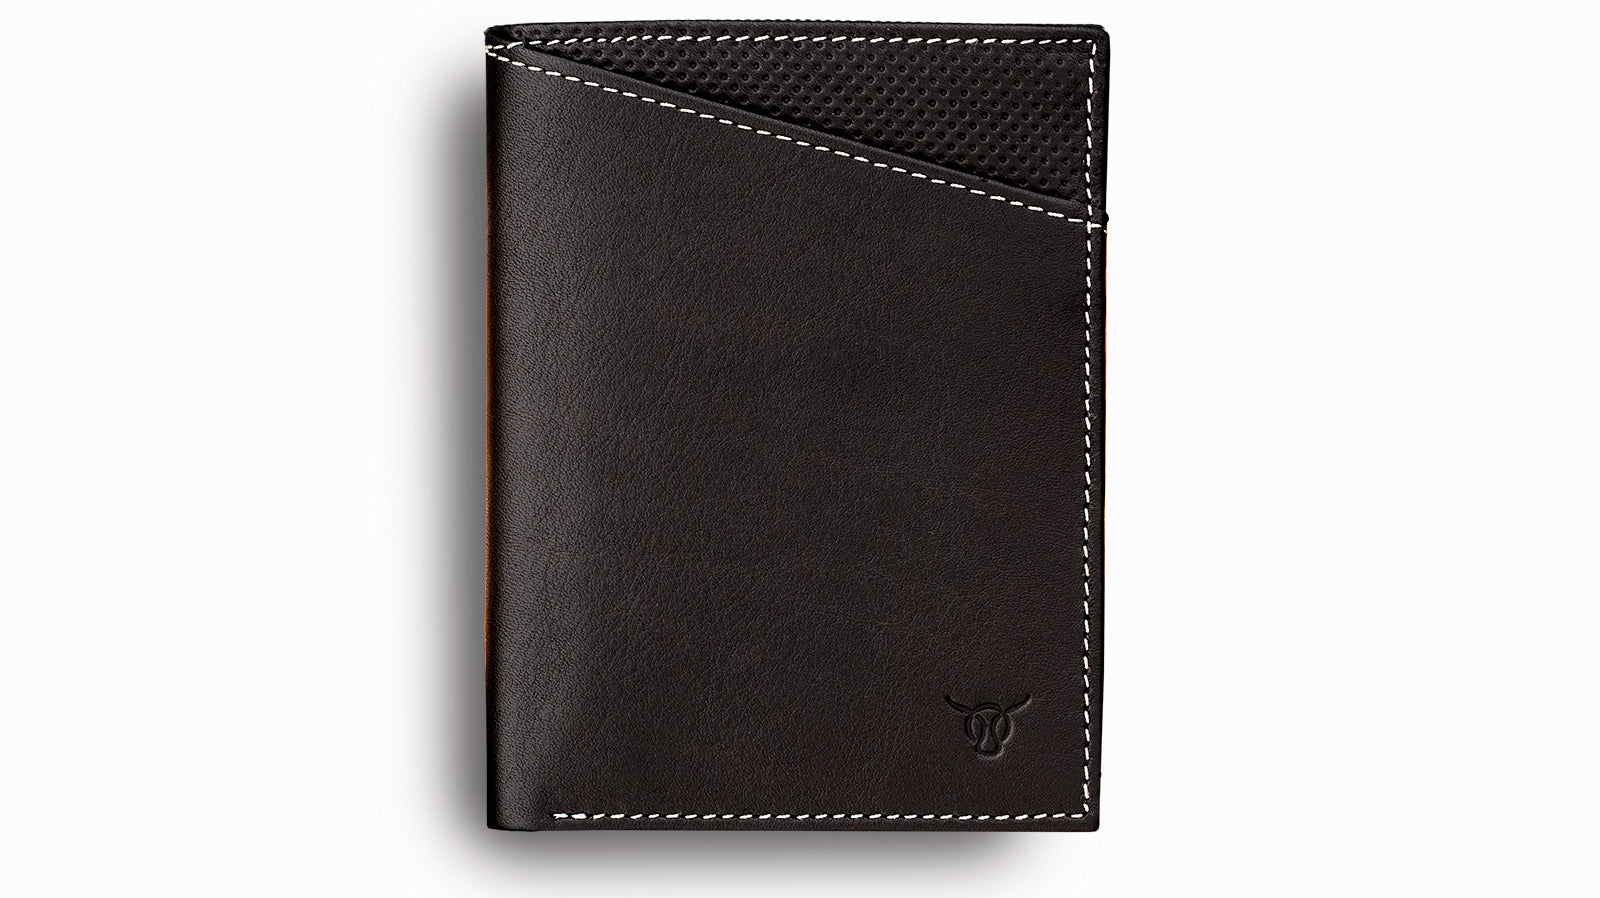 VASA Executive High Capacity Bifold